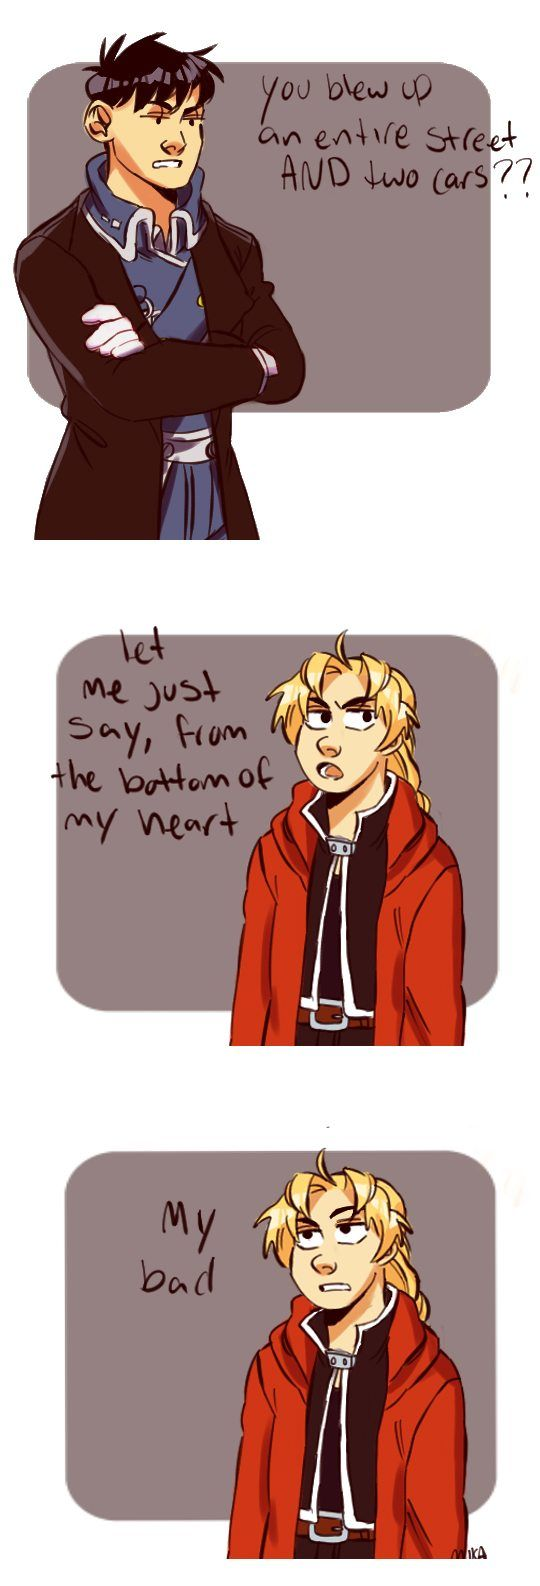 From the Bottom of his heart by mikasrockbells. This is literally my favorite fanart of FMA.